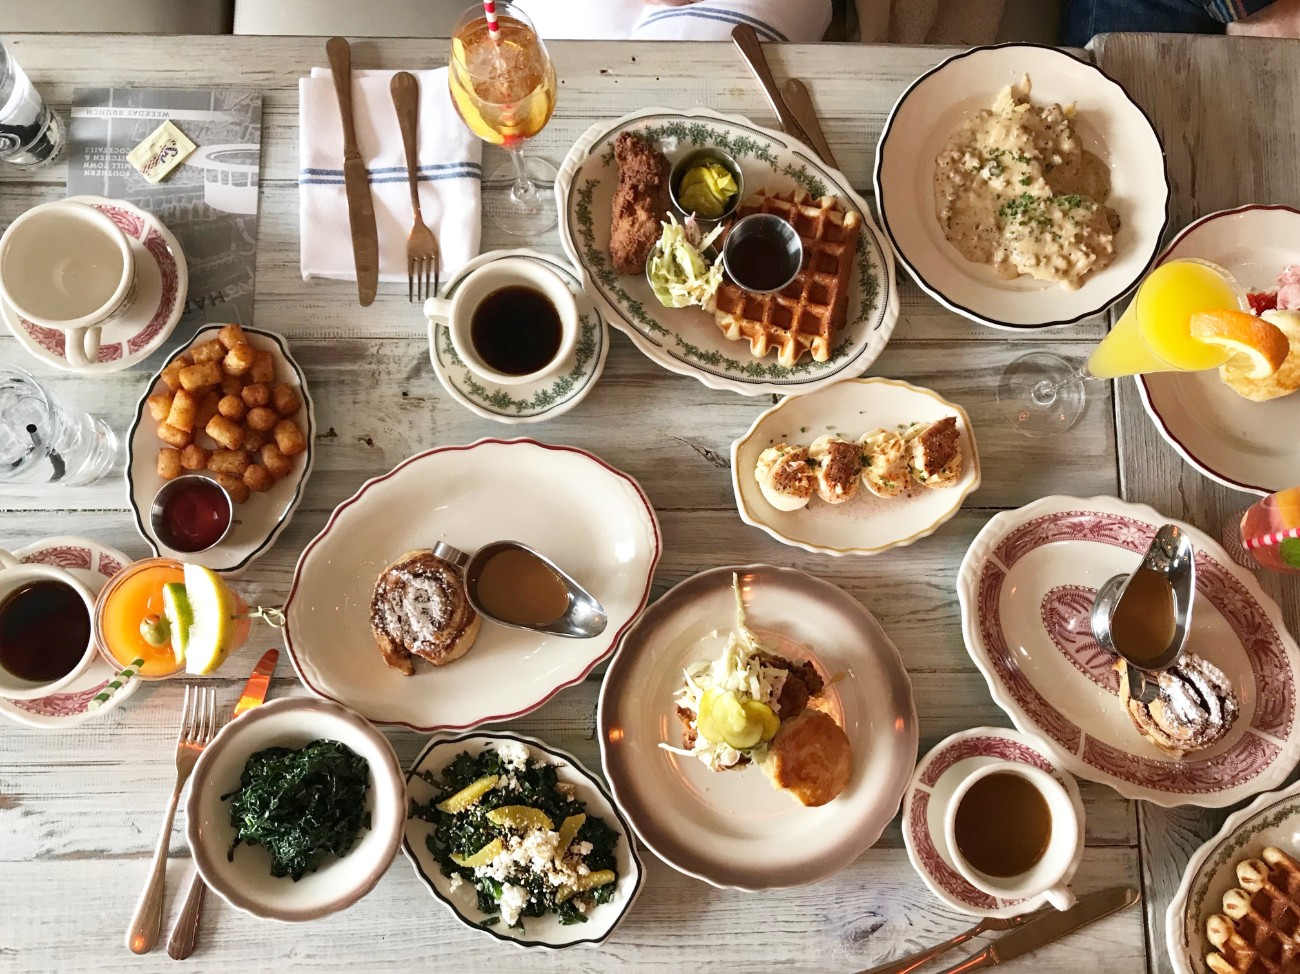 Brunch Best 10 Best Brunch Spots In Charlotte Plus What To Order At Each